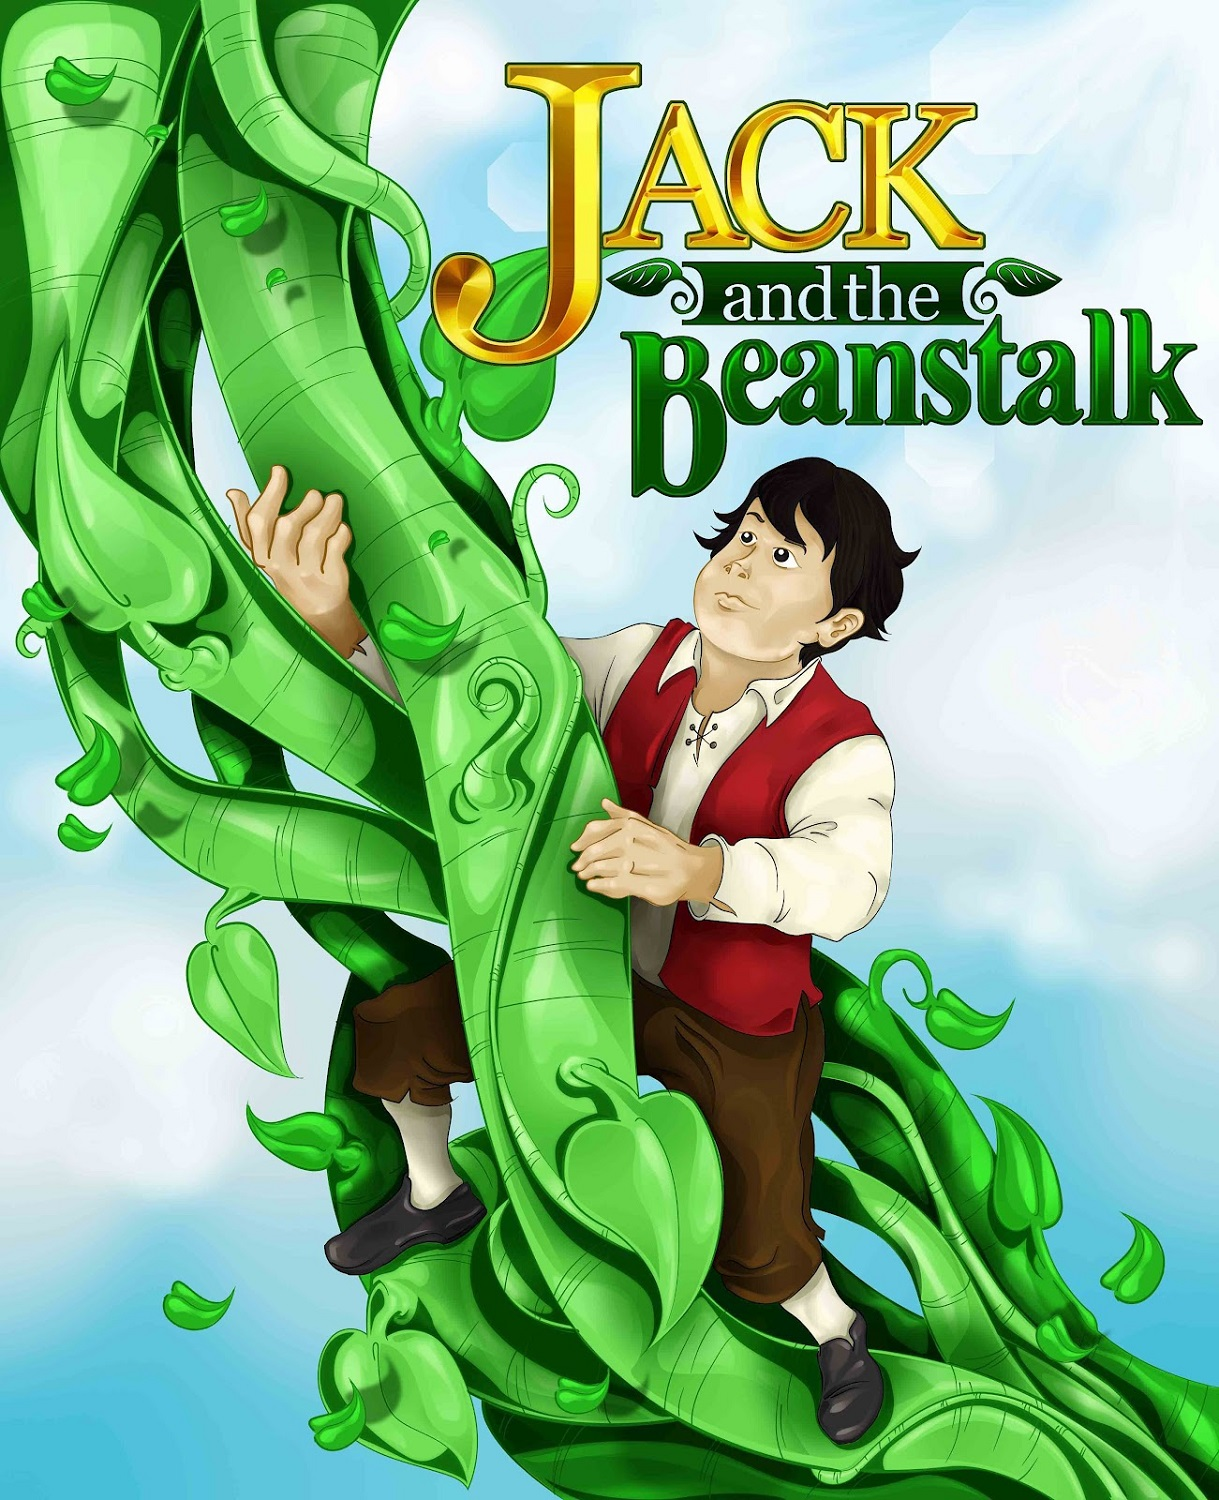 jack-and-the-beanstalk-images-story